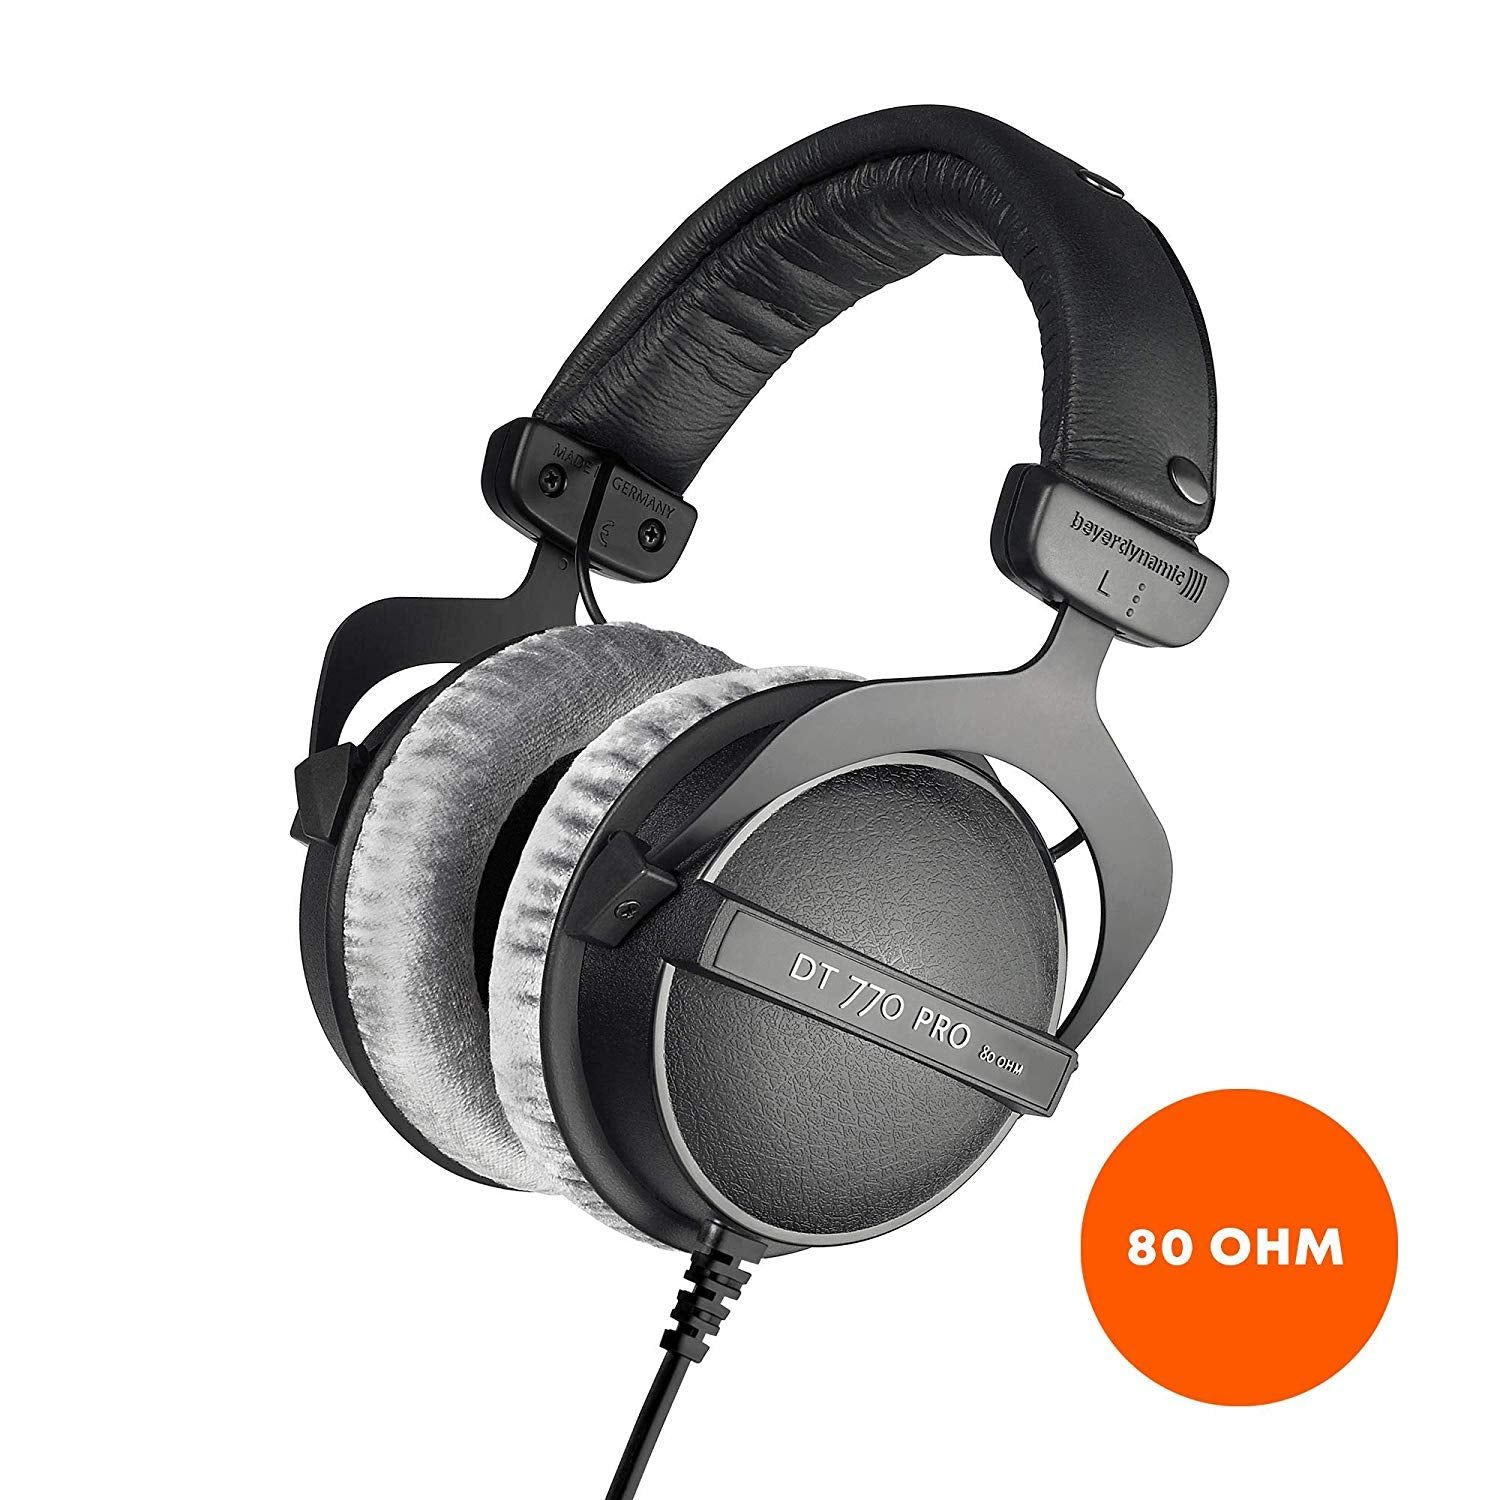 Beyerdynamic DT 770 Pro Monitor Headphones - Gears For Ears